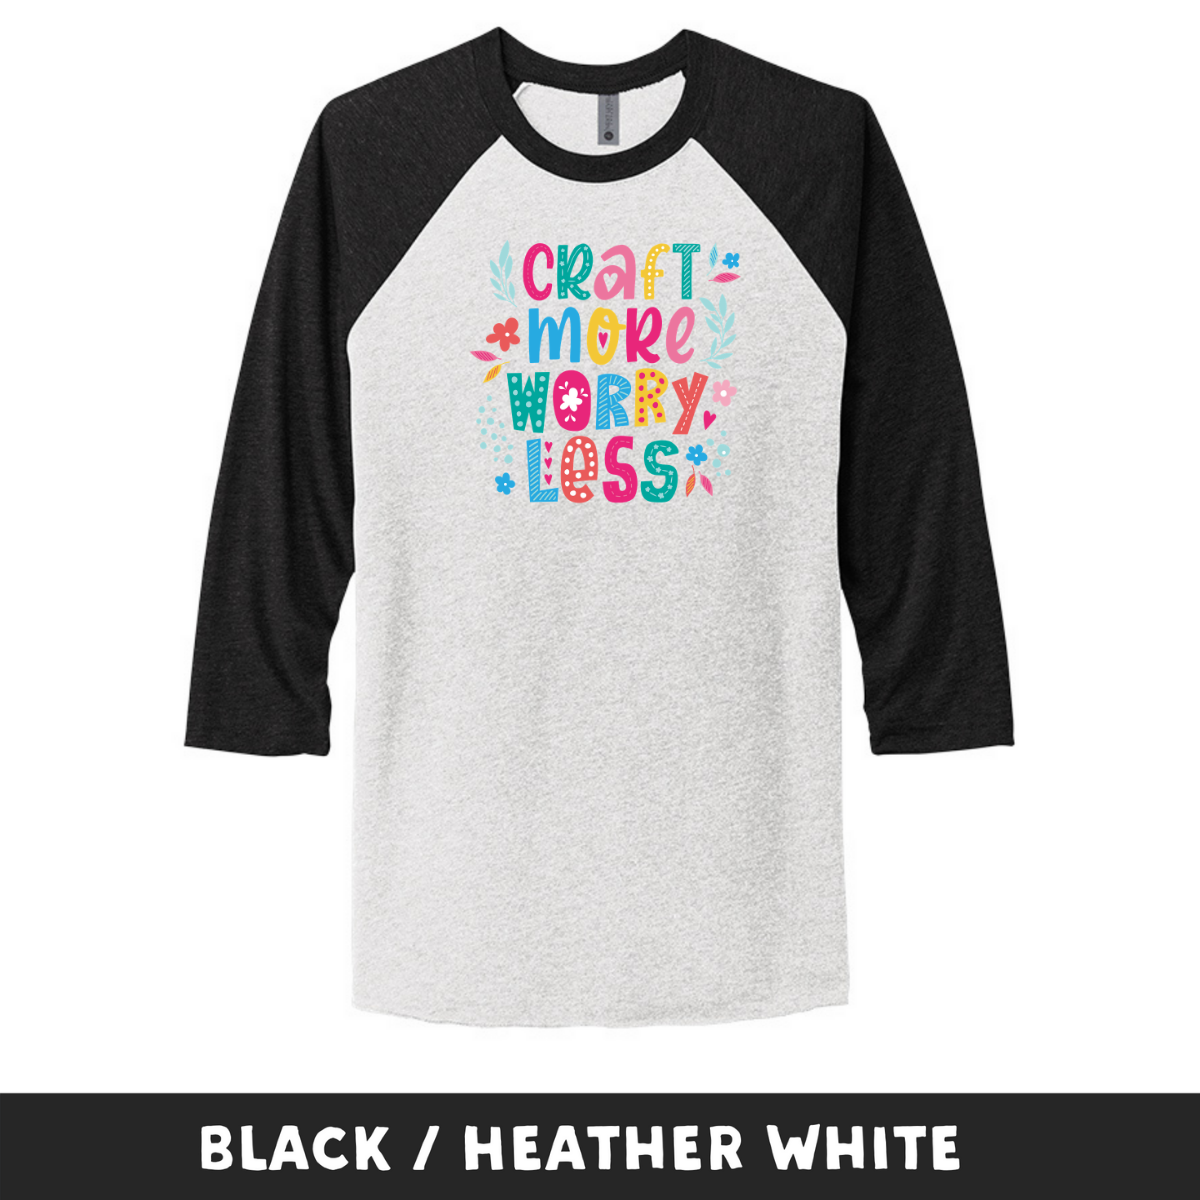 Black Heather White - Unisex Tri-Blend 3/4 Sleeve Raglan Tee - Craft More Worry Less